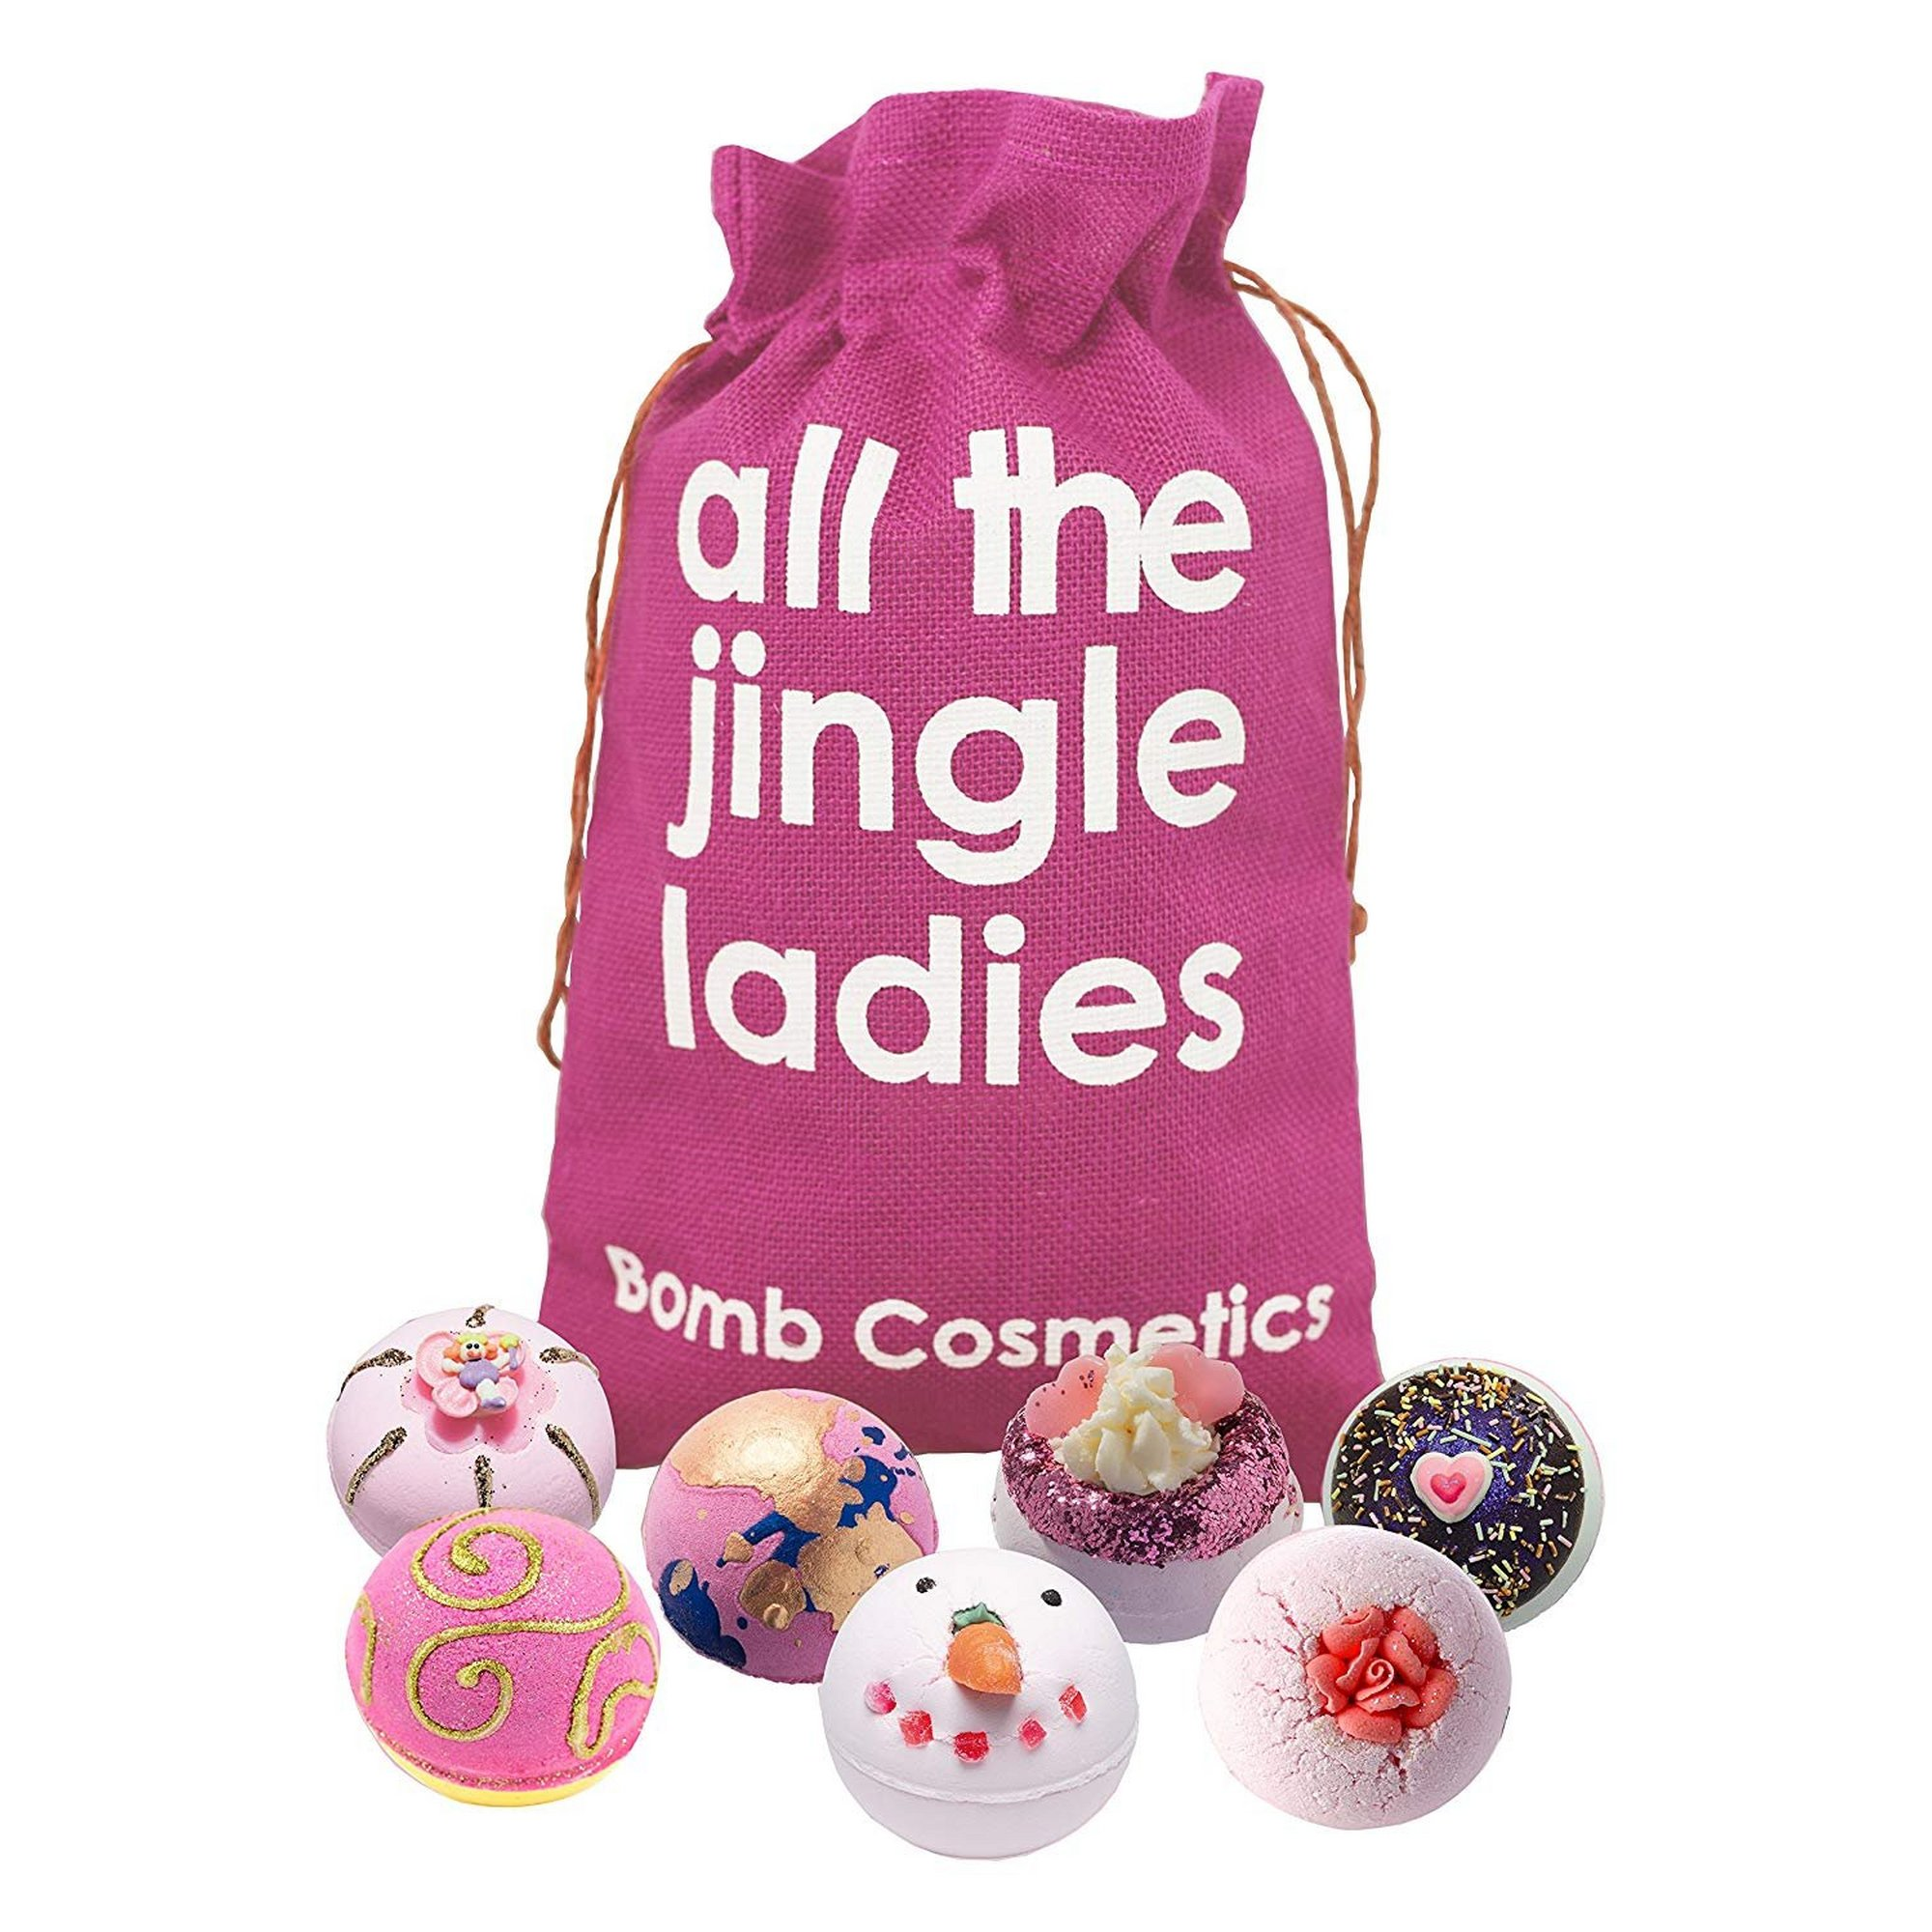 Image of Bomb Cosmetics All the Jingle Ladies Sack